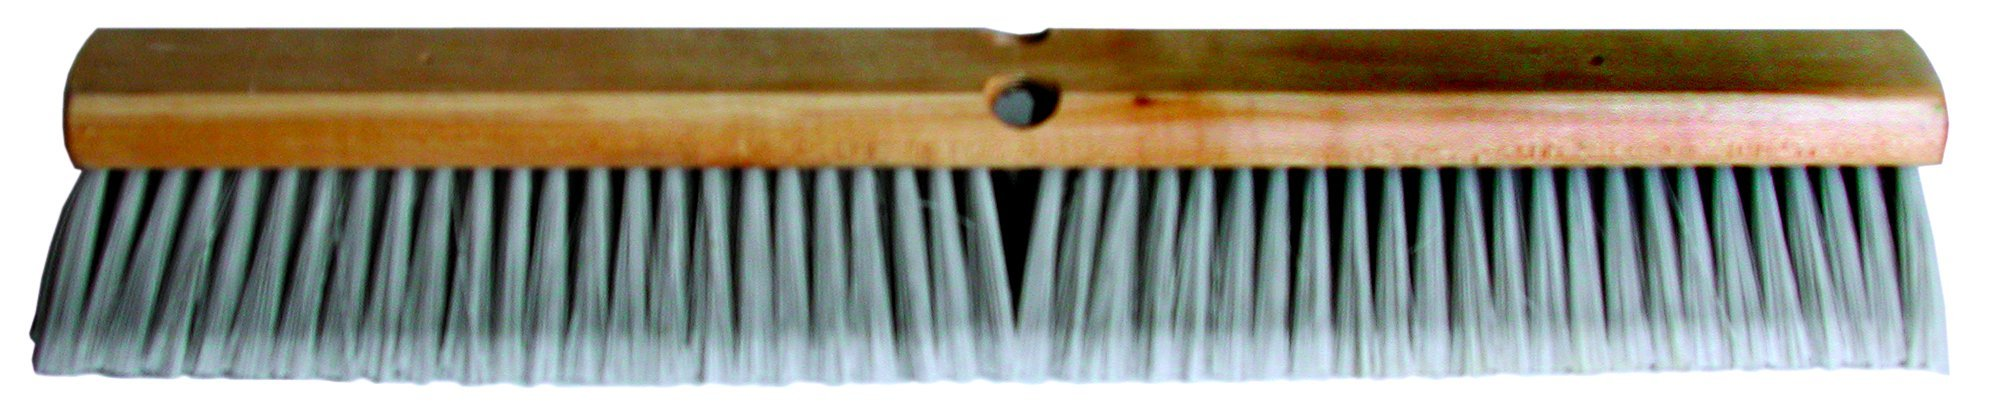 Magnolia Brush 3724 LH Line Floor Brush, Flagged-Tip Plastic Bristles, 3'' Trim, 24'' Length, Silver (Case of 12)